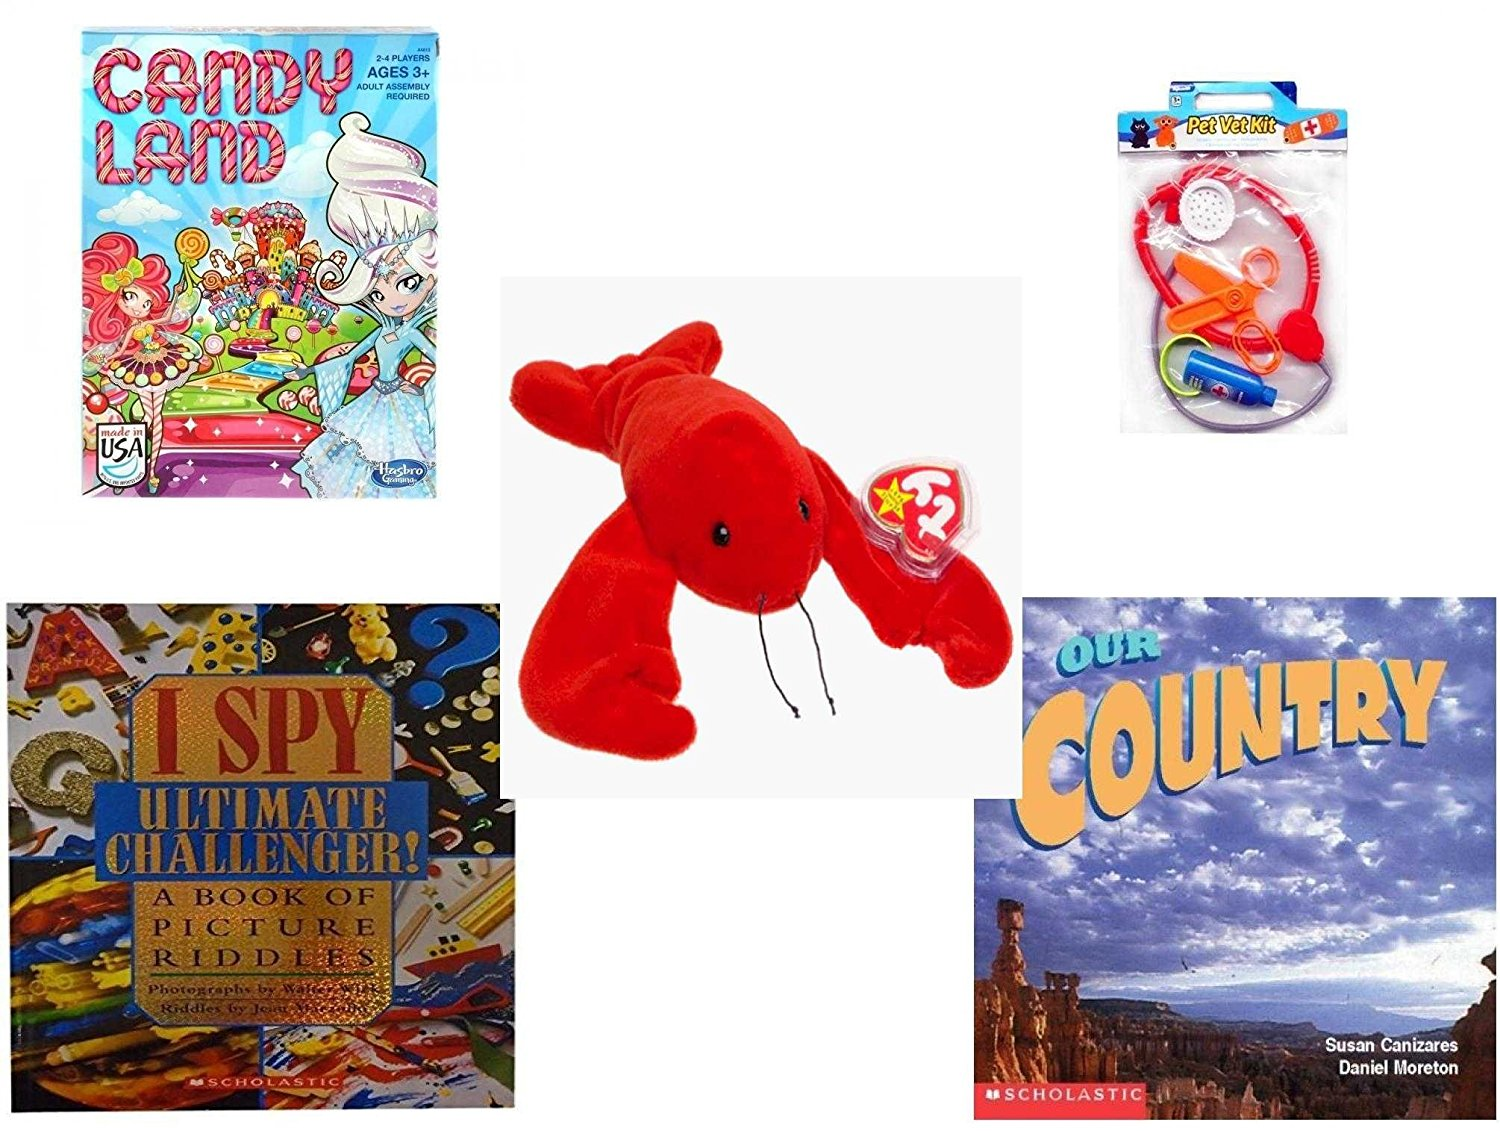 Children's Gift Bundle - Ages 3-5 [5 Piece] - Candy Land Game - Pet Vet Kit Veterinarian 4pc Set Toy - Ty Beanie Baby - Pinchers the Lobster - I Spy Ultimate Challenger: A Book of Picture Riddles Ha